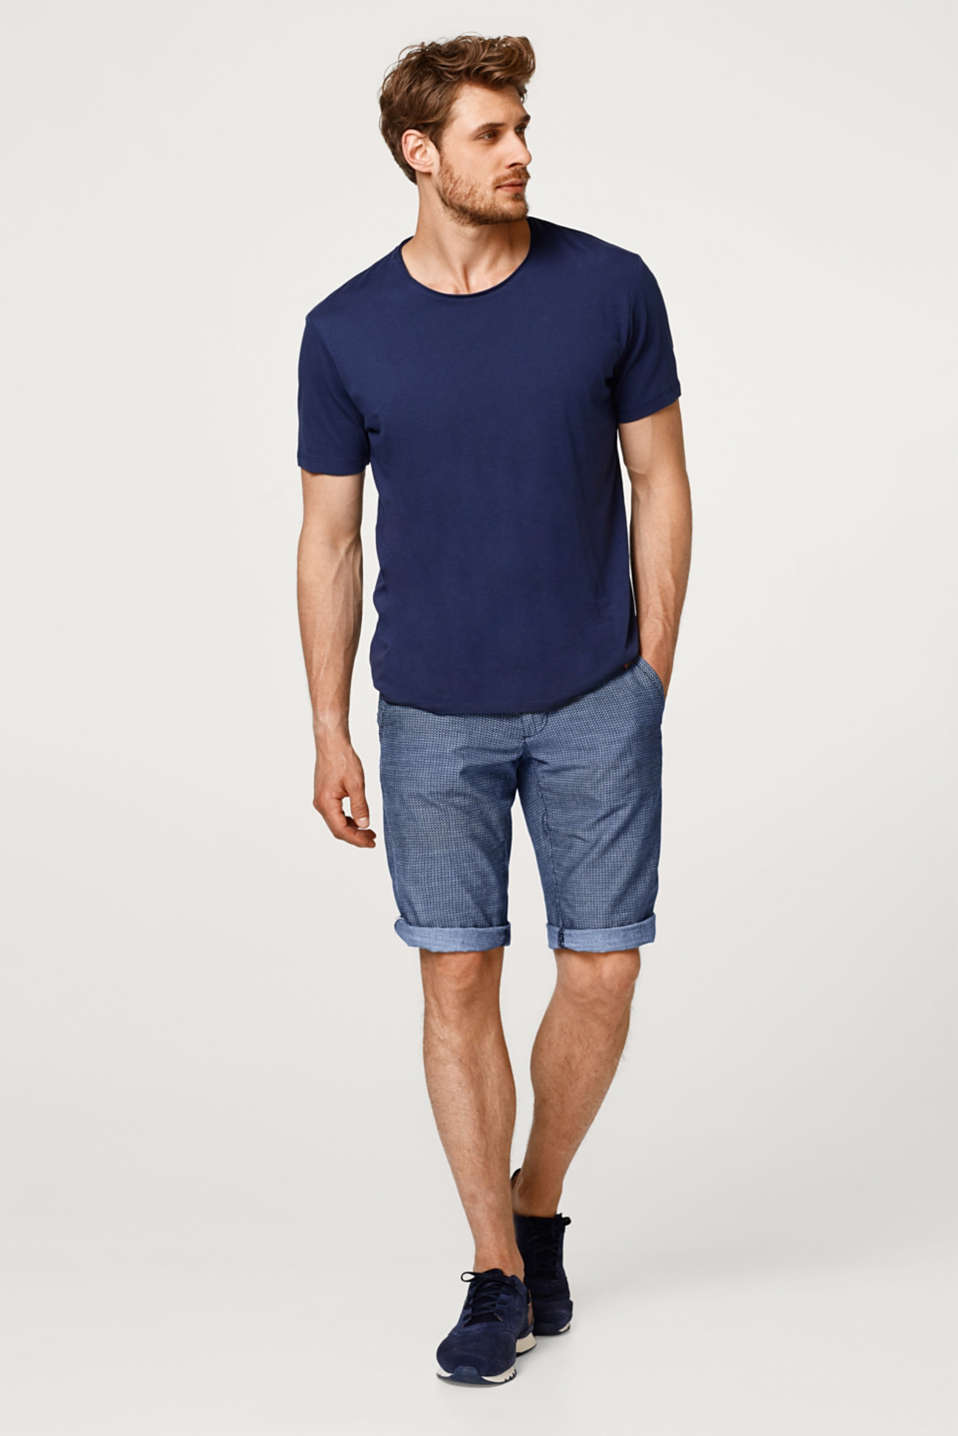 Chambray shorts with a braided belt, made of cotton